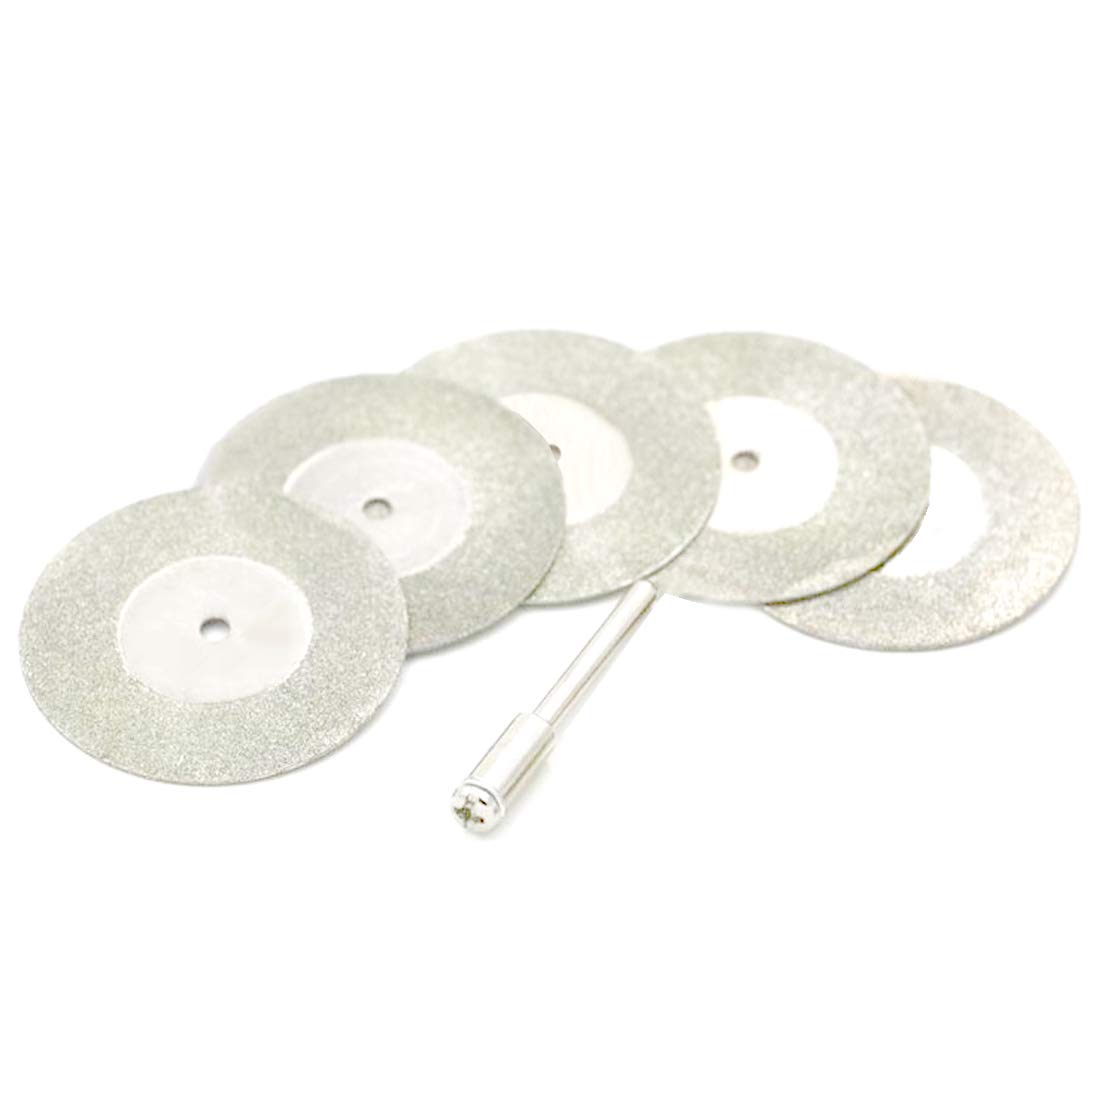 5pcs 16mm Cutting Disc Diamond Grinding Sharpener Abrasive Disks Compatible with 1pc Connecting Shank Compatible for Dremel Rotary Tools 91ai-store